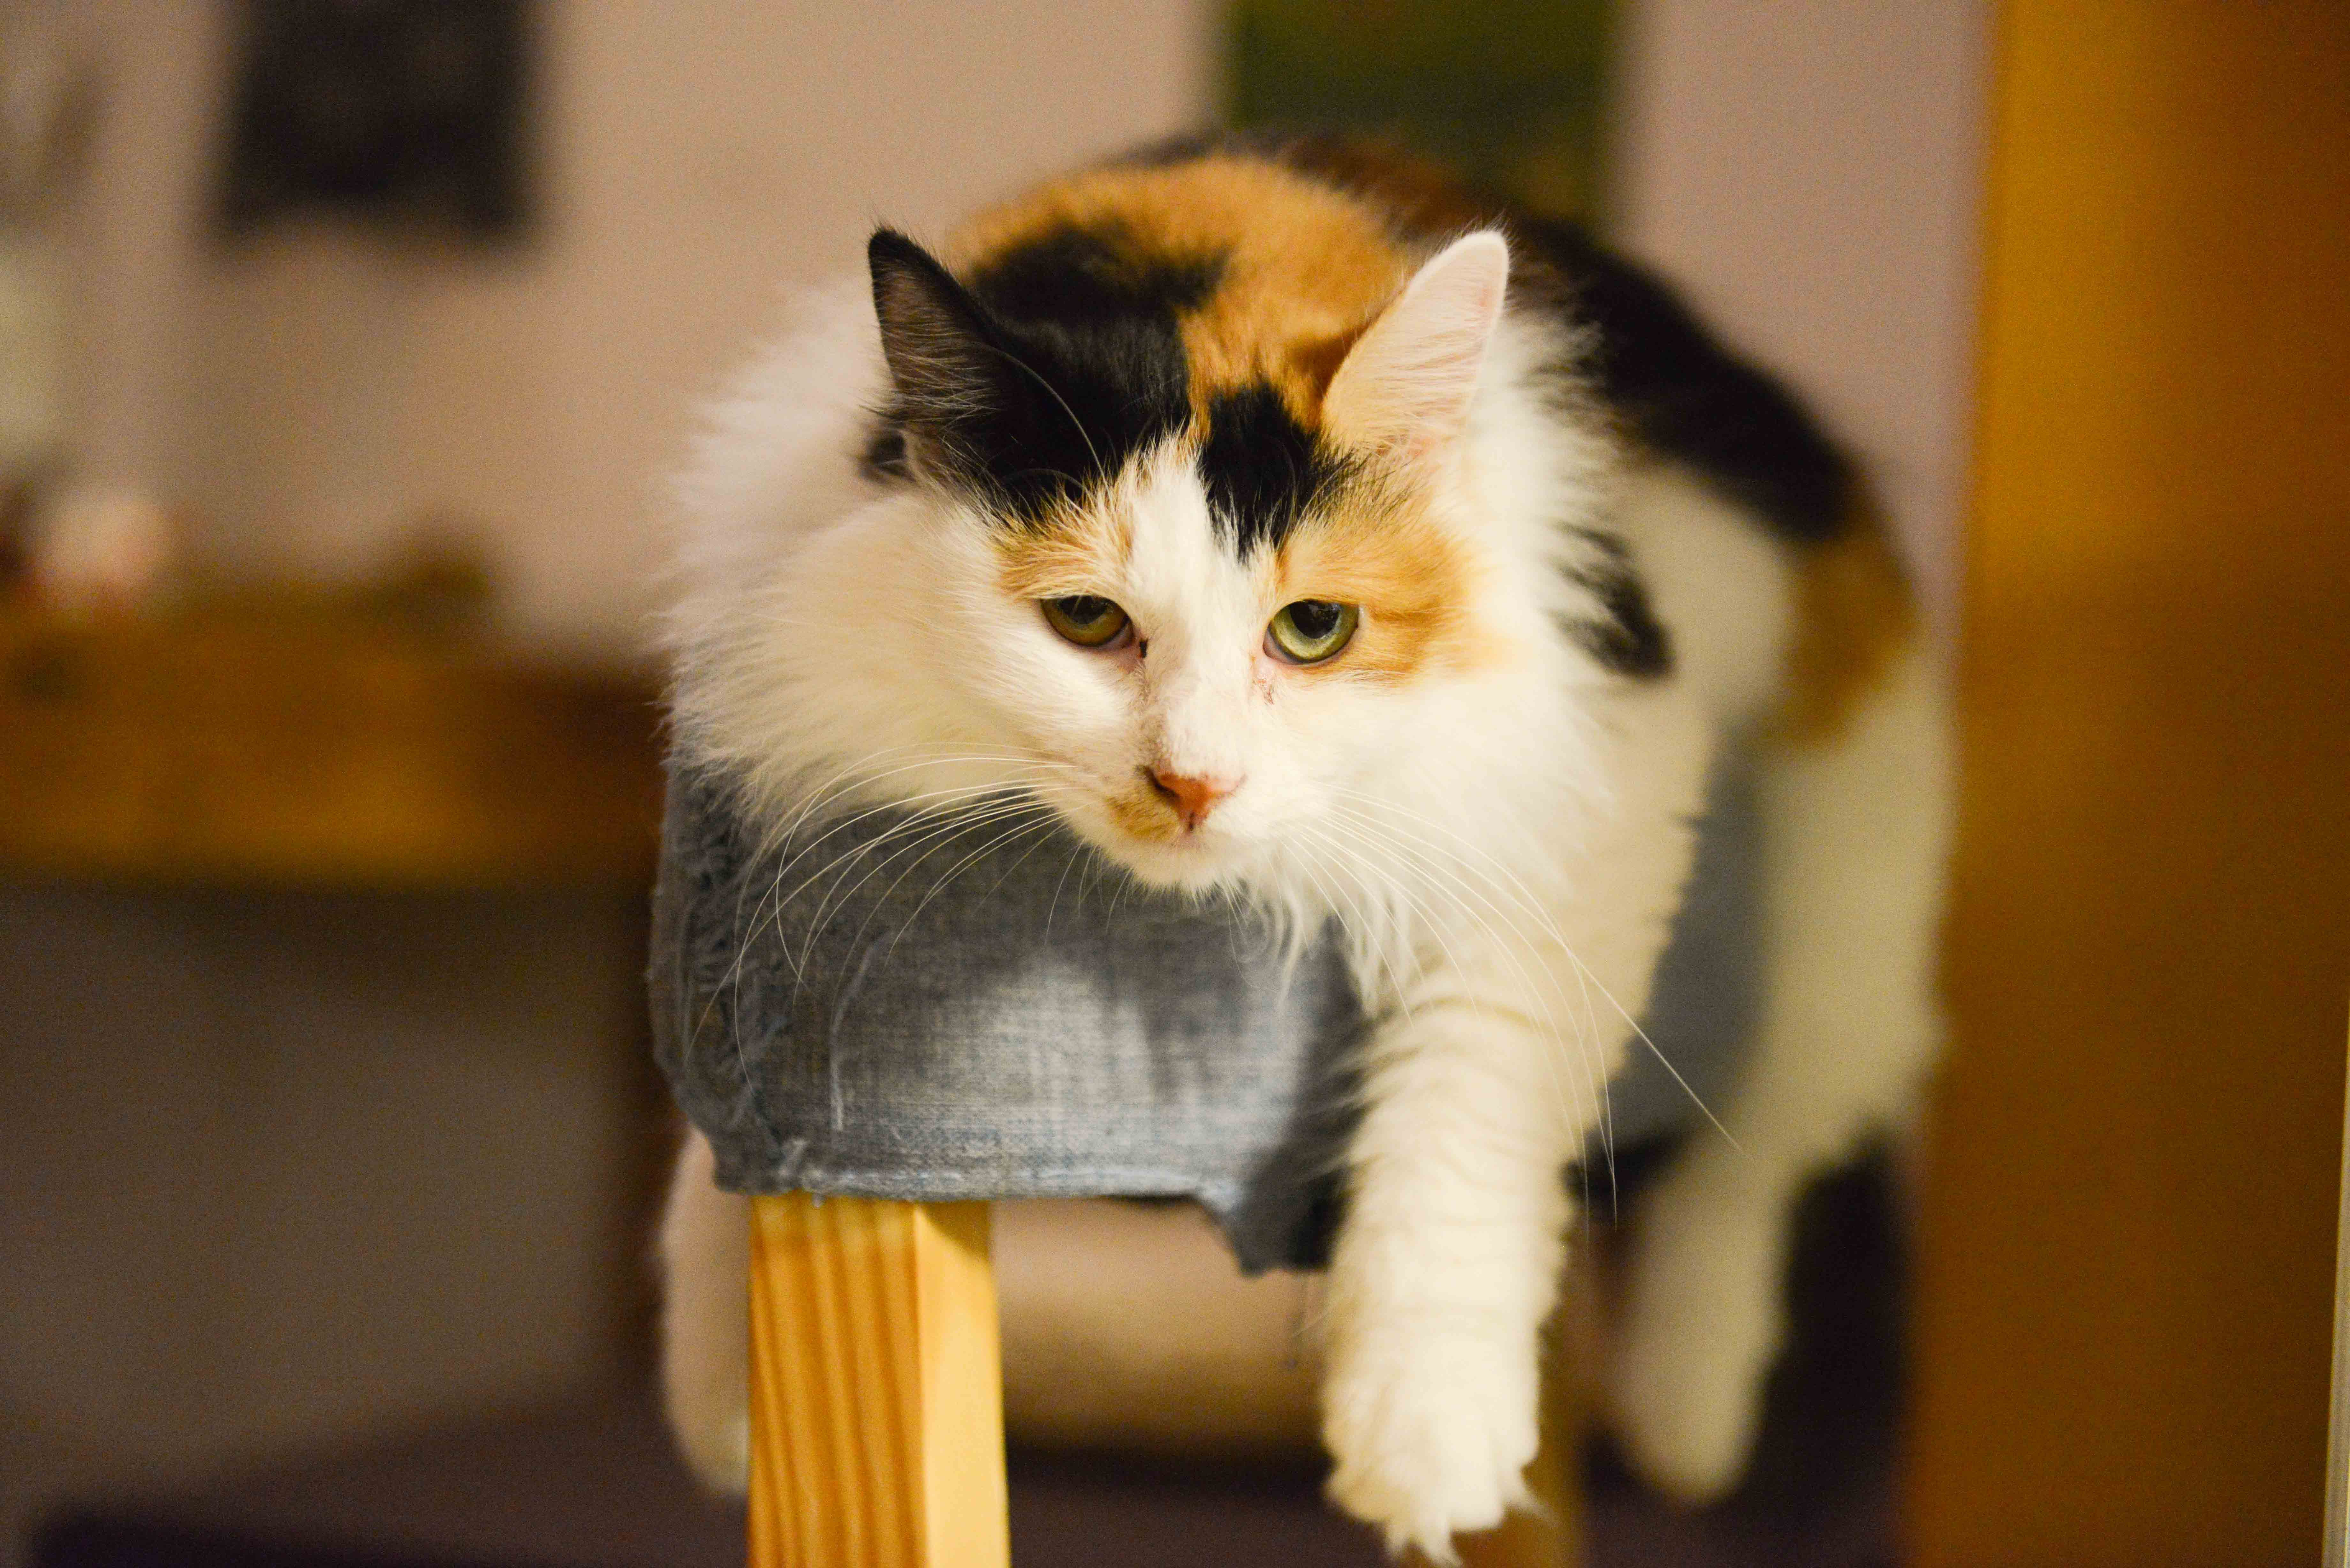 Calico Cat, Kitten, Young, Whiskers, Tabby, HQ Photo